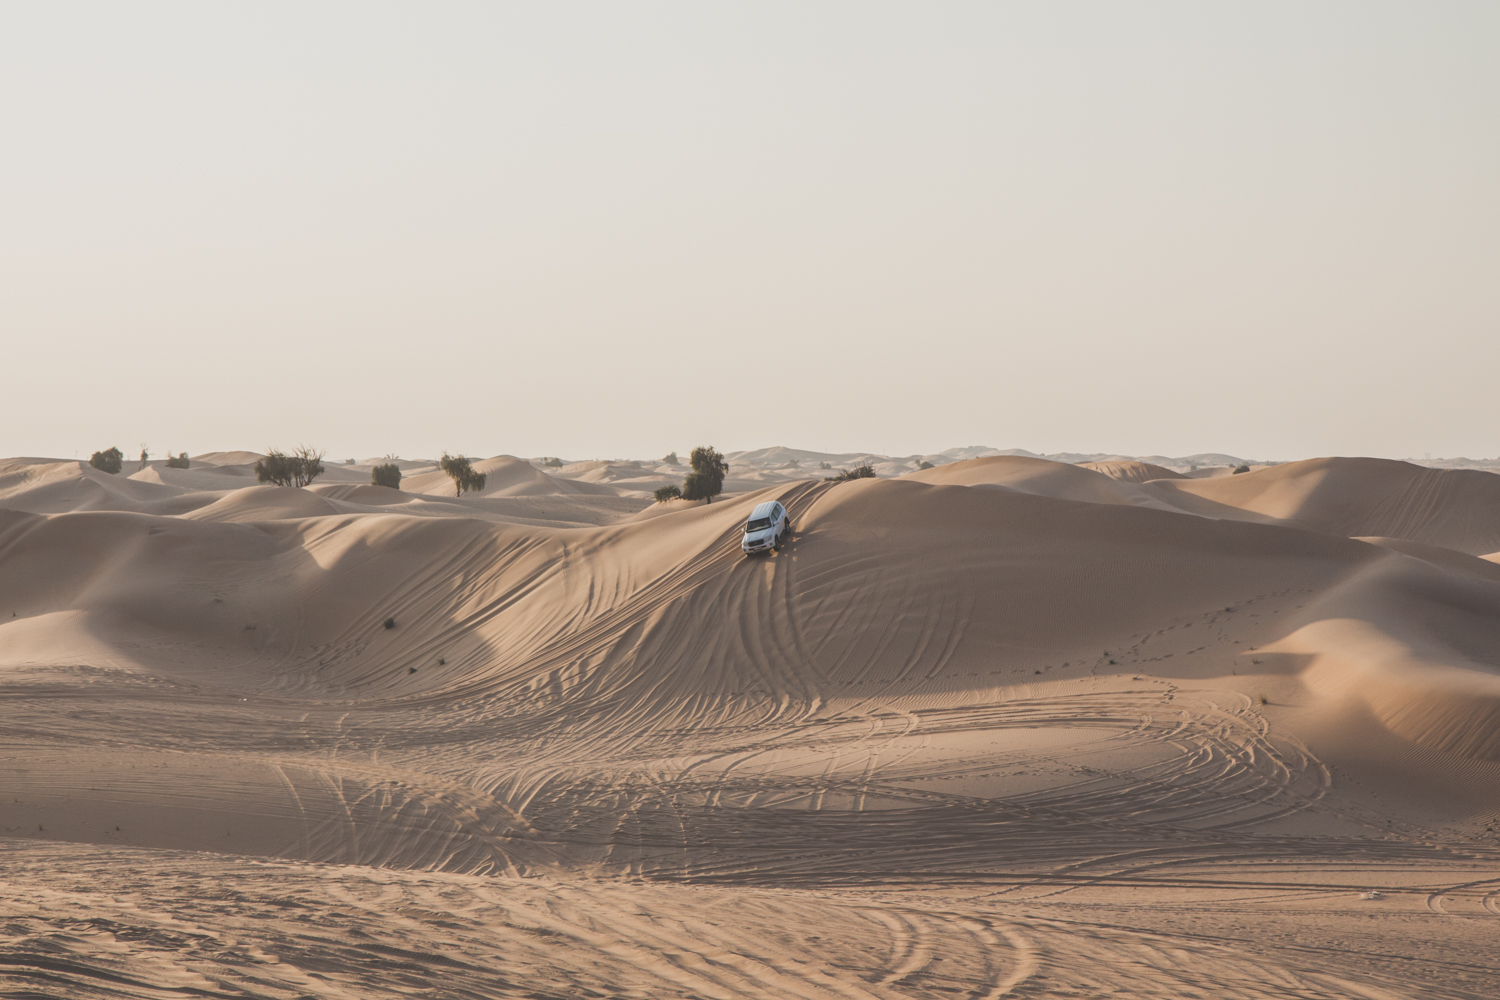 dune bashing abu dhabi, things to do in abu dhabi